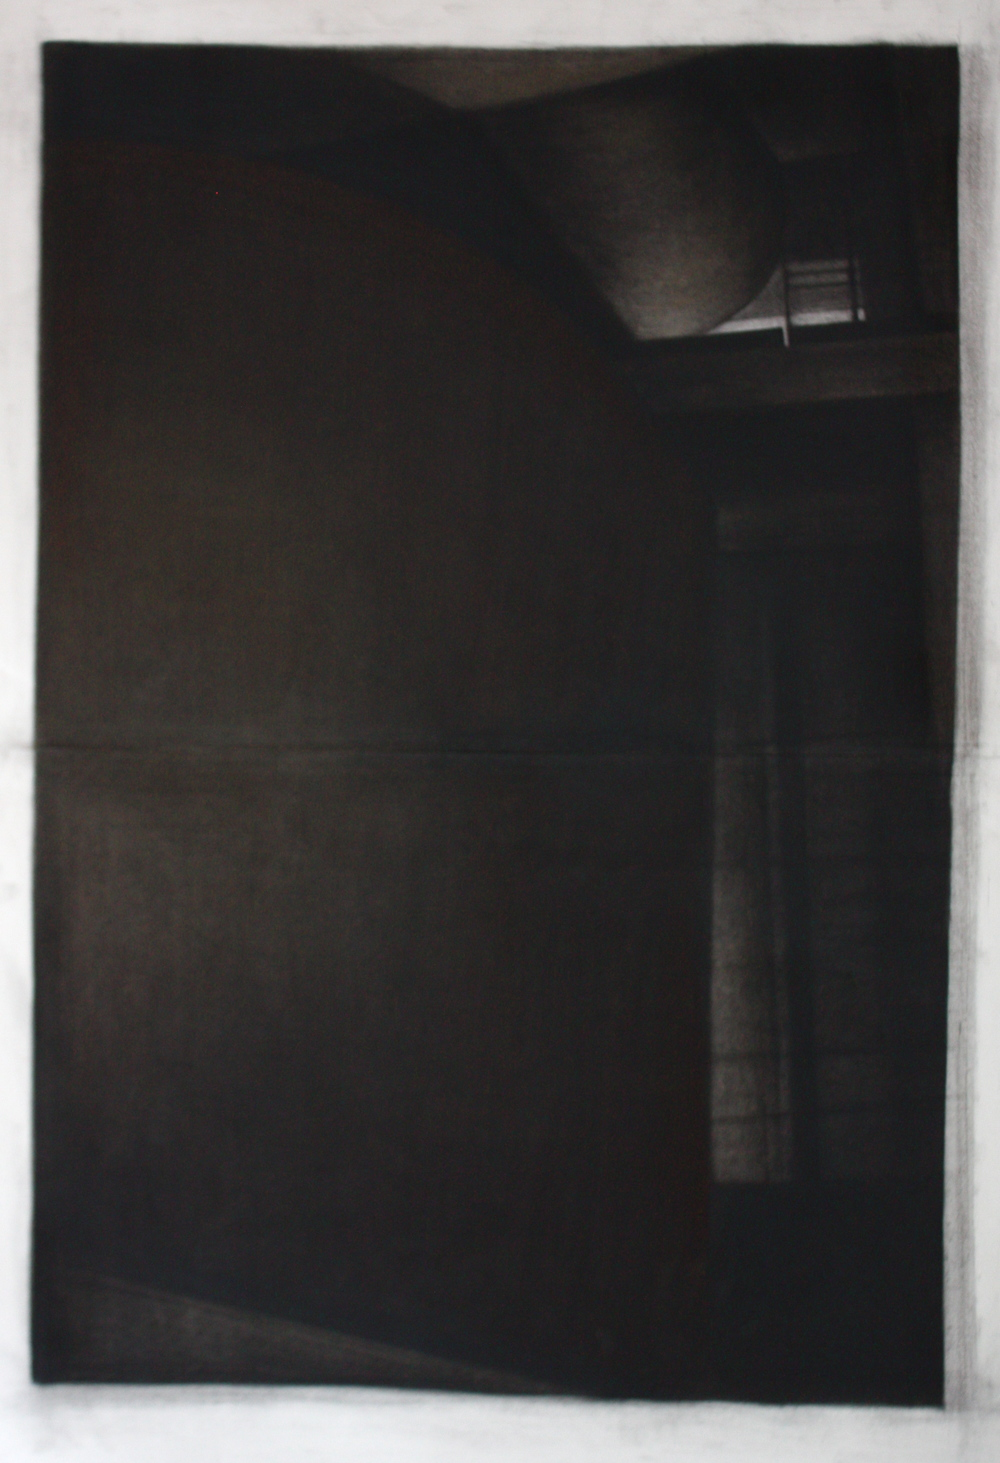 Detroit Series 003, Charcoal and pastel on paper, 115x89cm